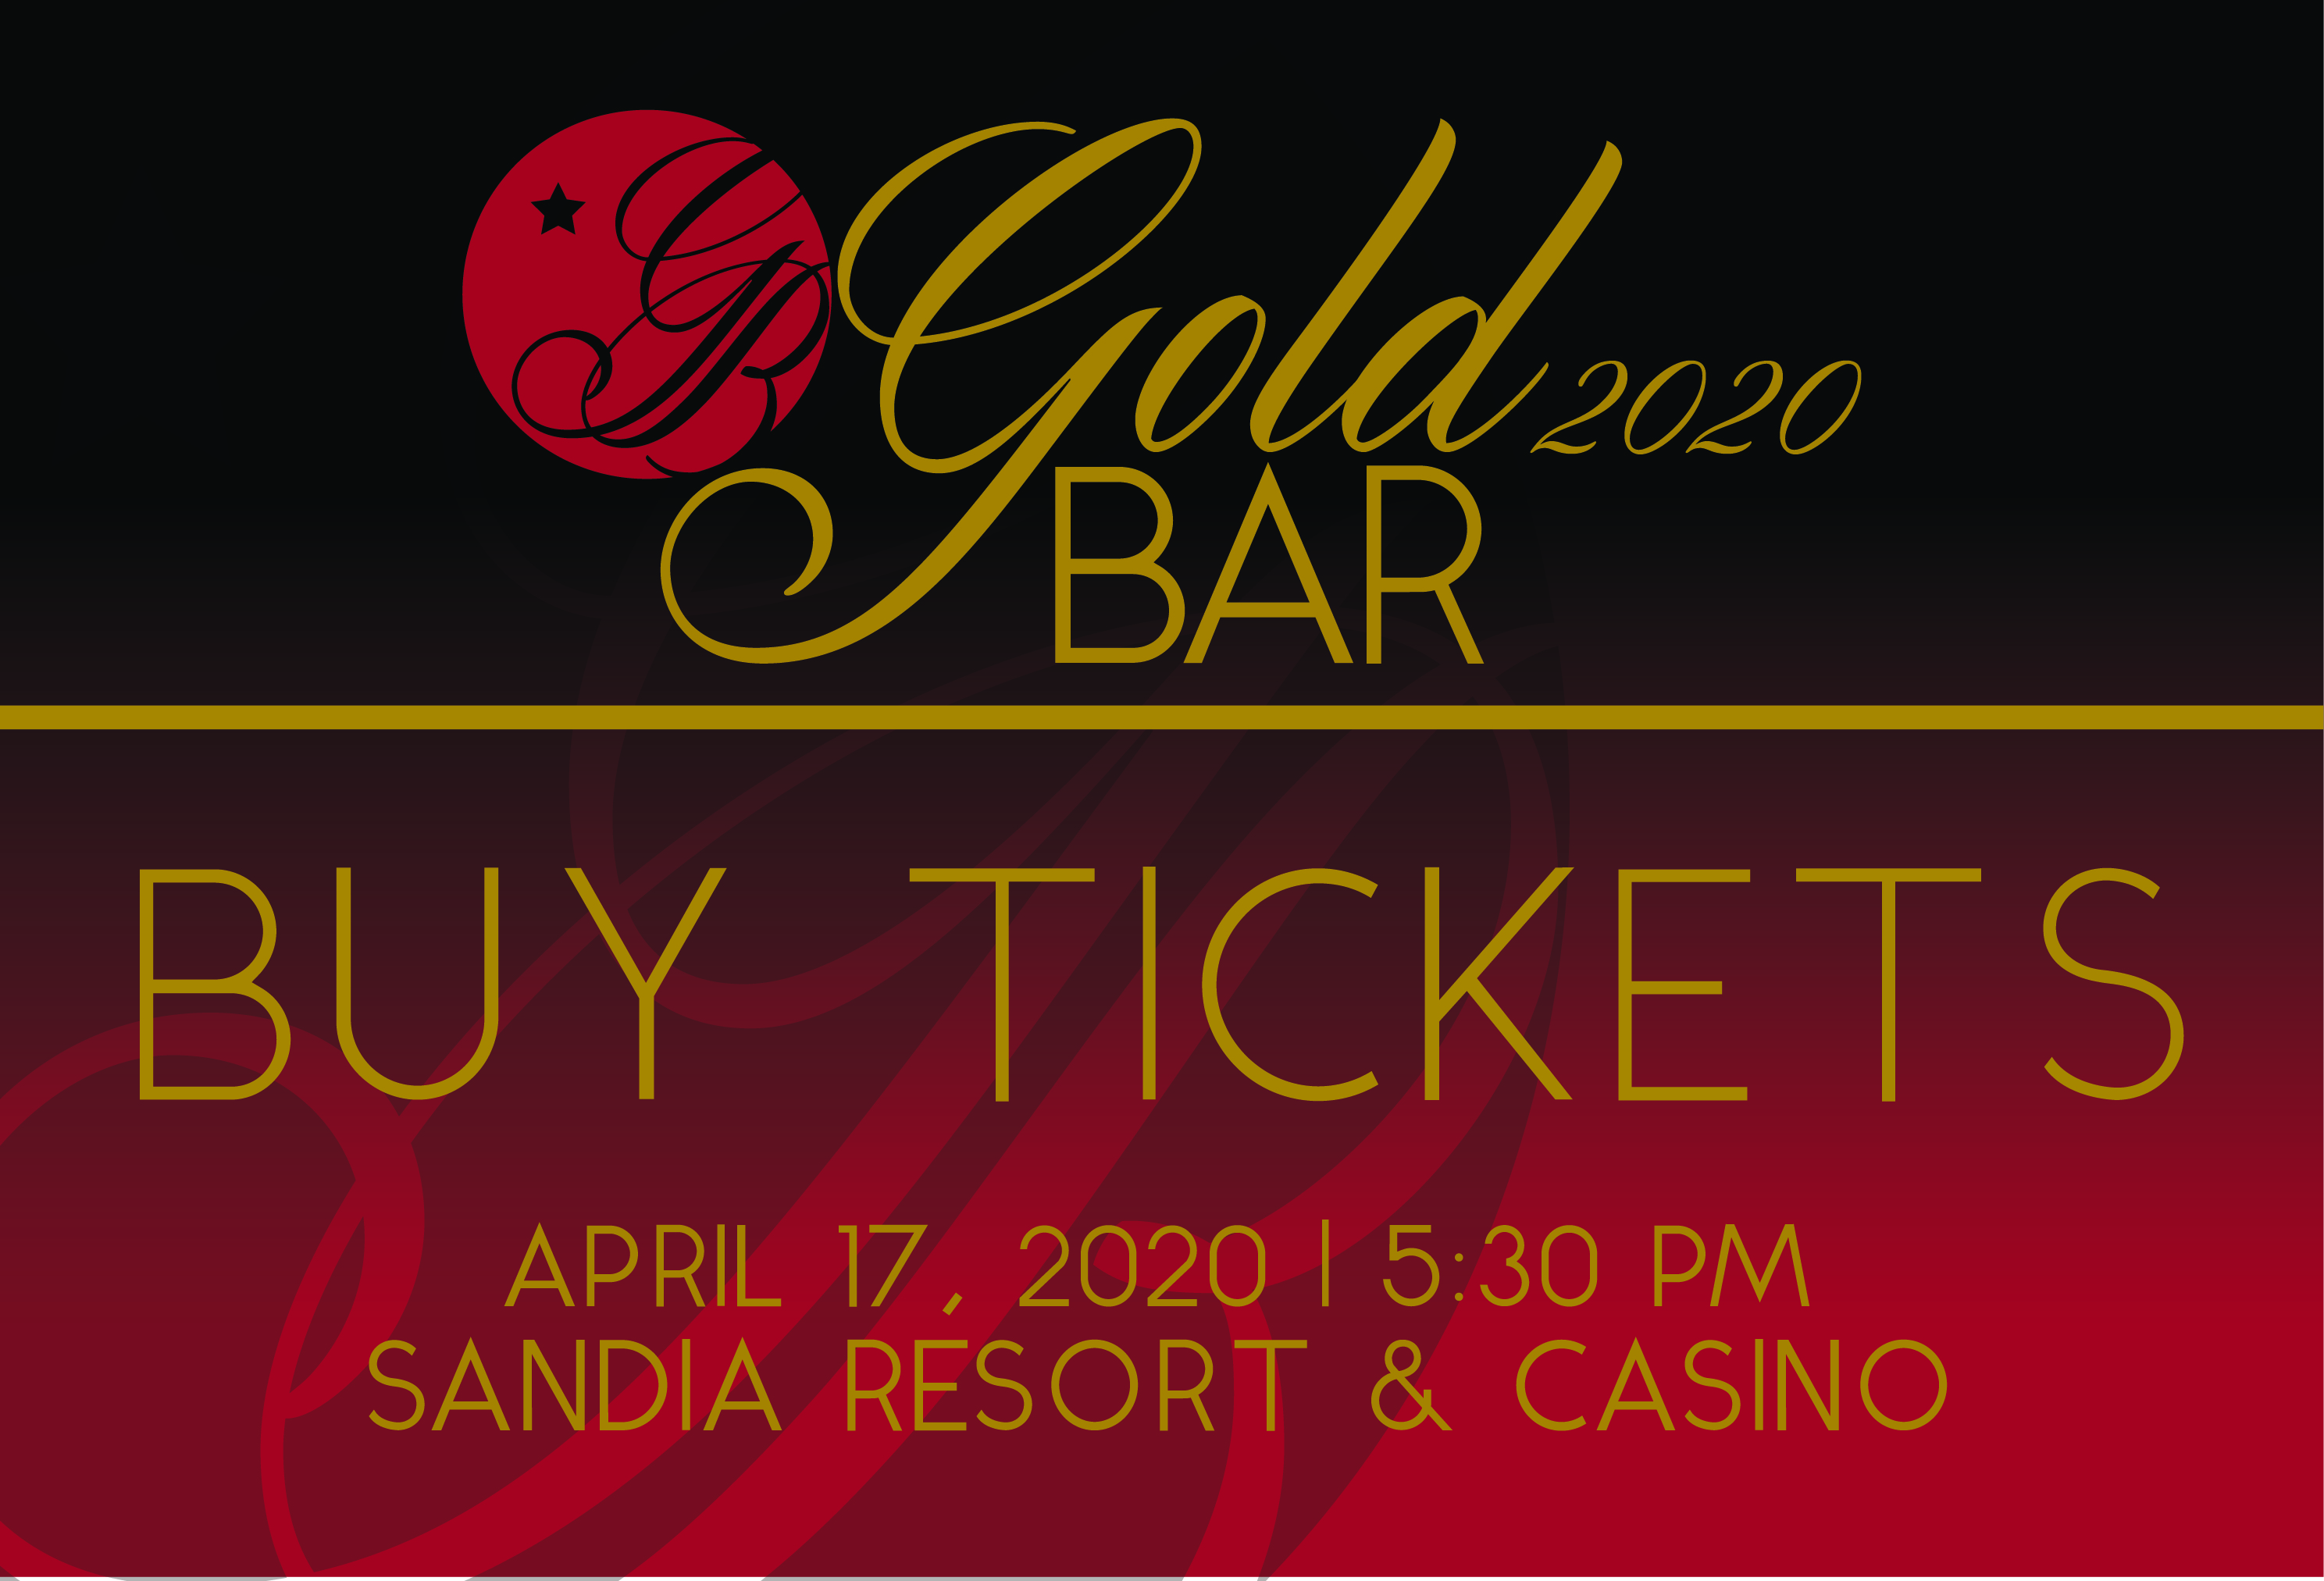 Gold Bar 2020 Buy Tickets Carousel UPDATED